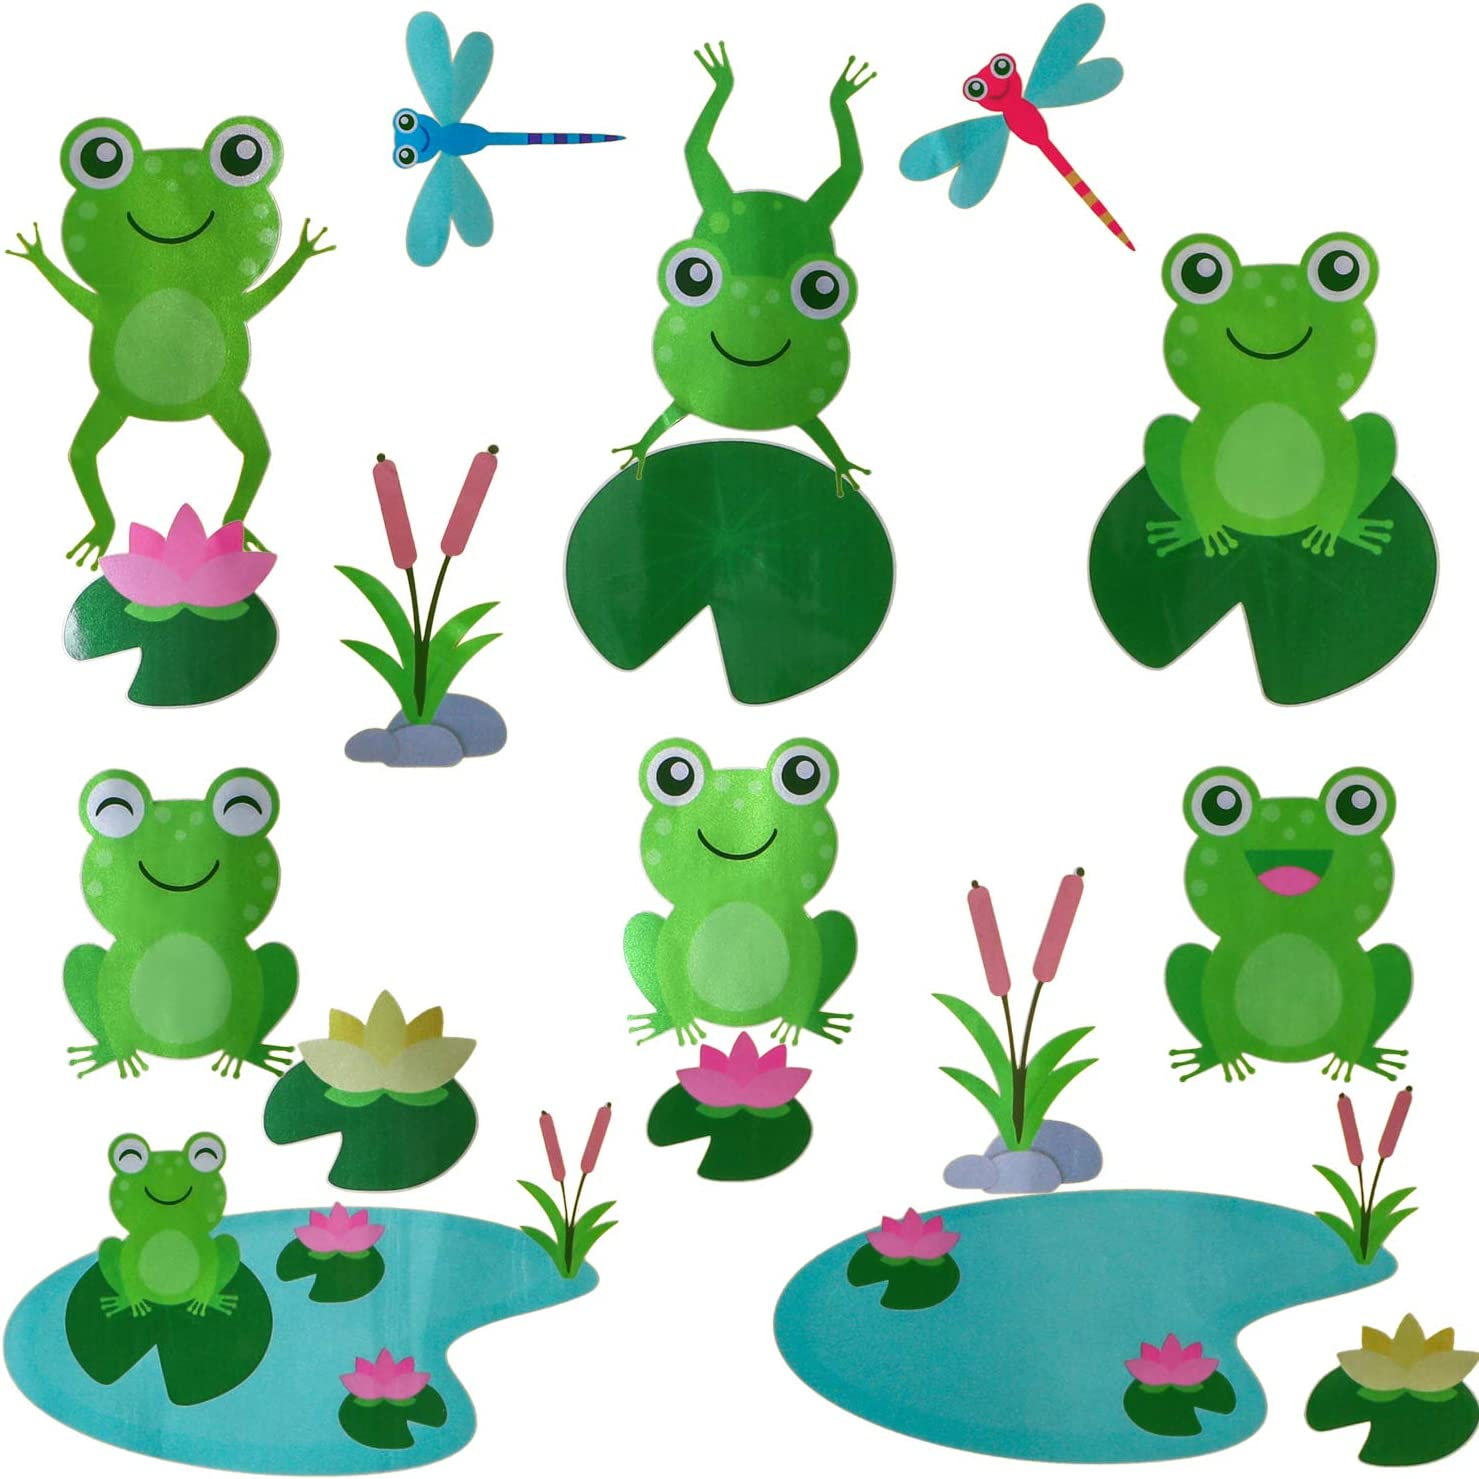 Cute Frog Decals Wall Stickers Jumping Frogs with Dragonflies and Lotus - Pond Friends Frog Window Sticker Set Individual Peel and Stick Graphics on a (25.5 in W x 10.6 in H) Sticker Sheet